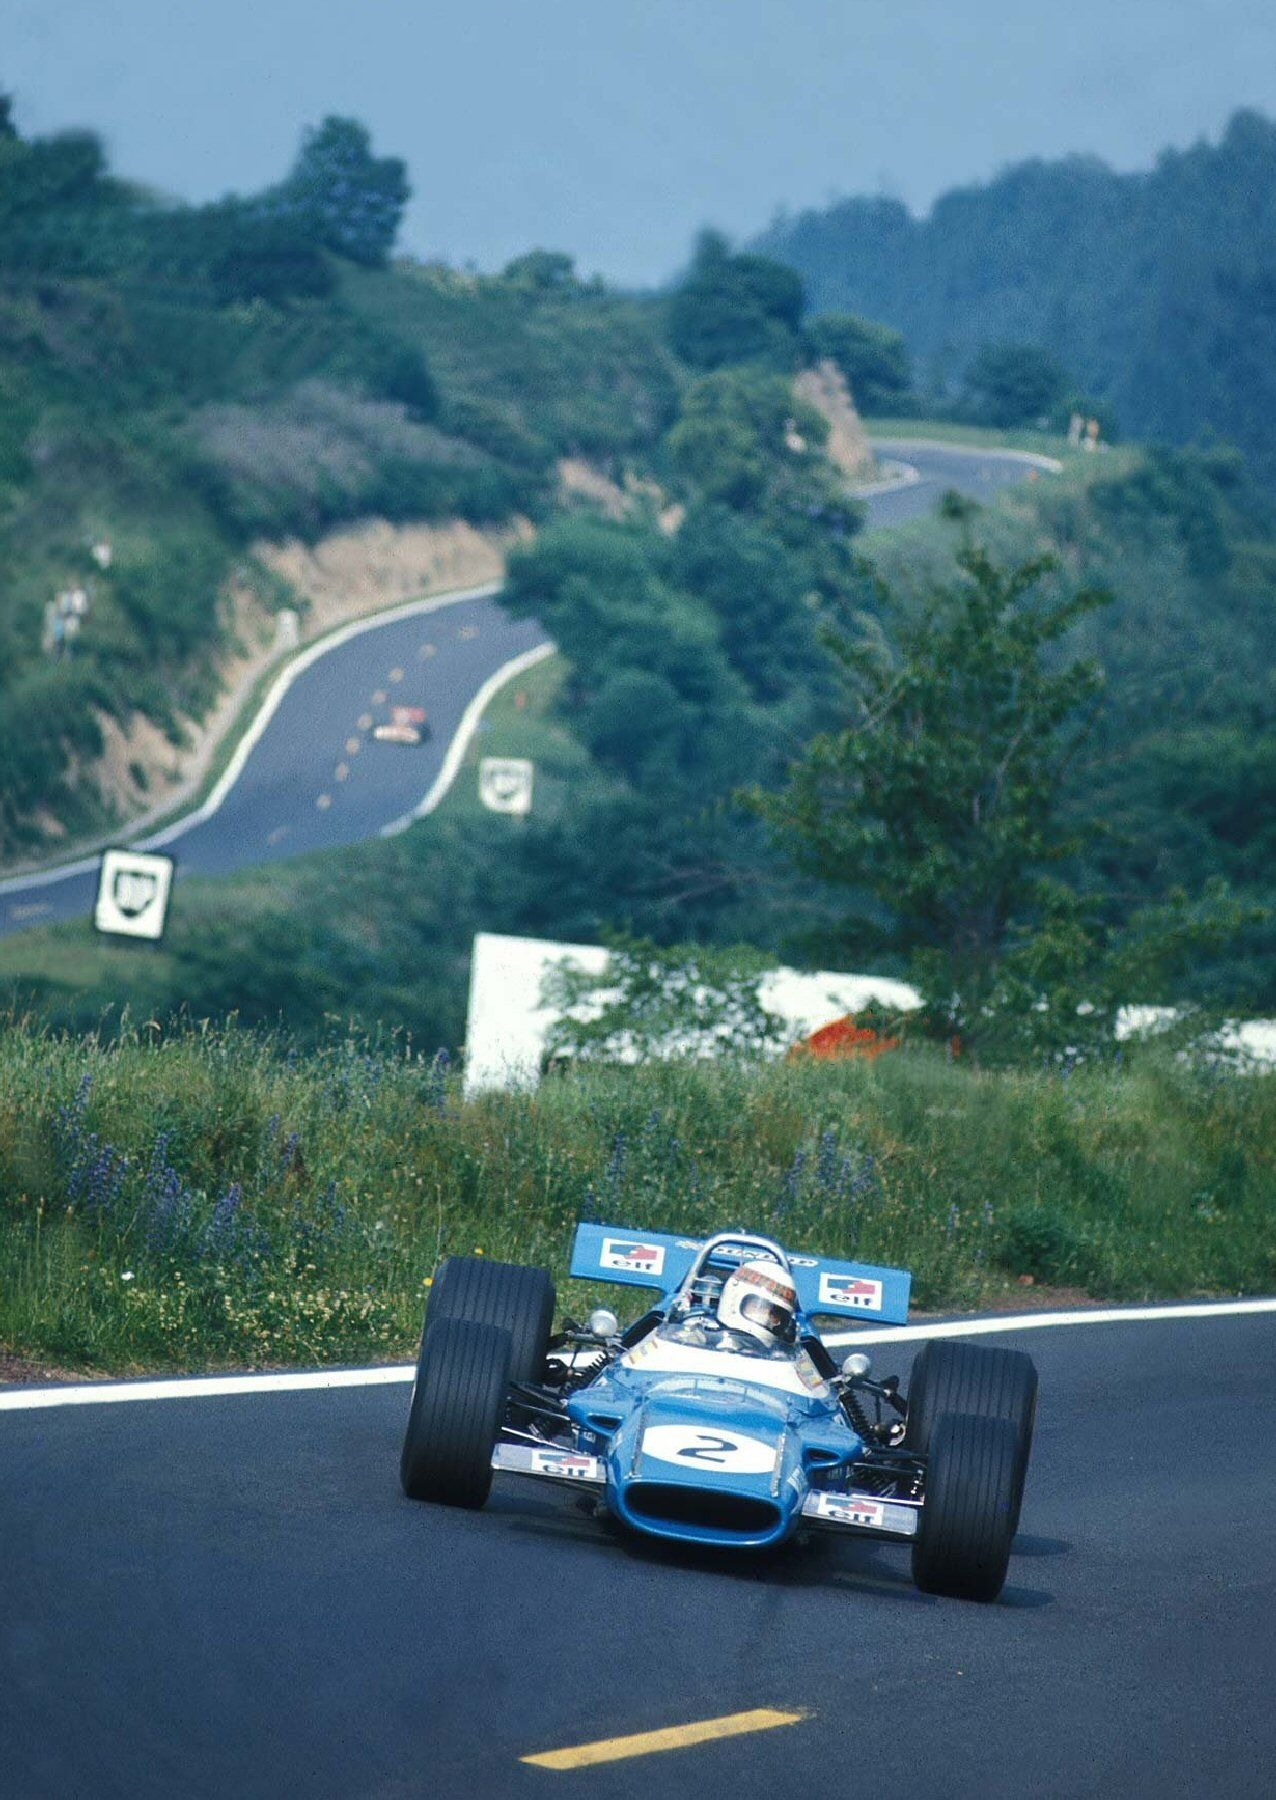 jackie stewart matra ms80 clermont ferrand 1969 vintage racecars pinterest f1 cars. Black Bedroom Furniture Sets. Home Design Ideas